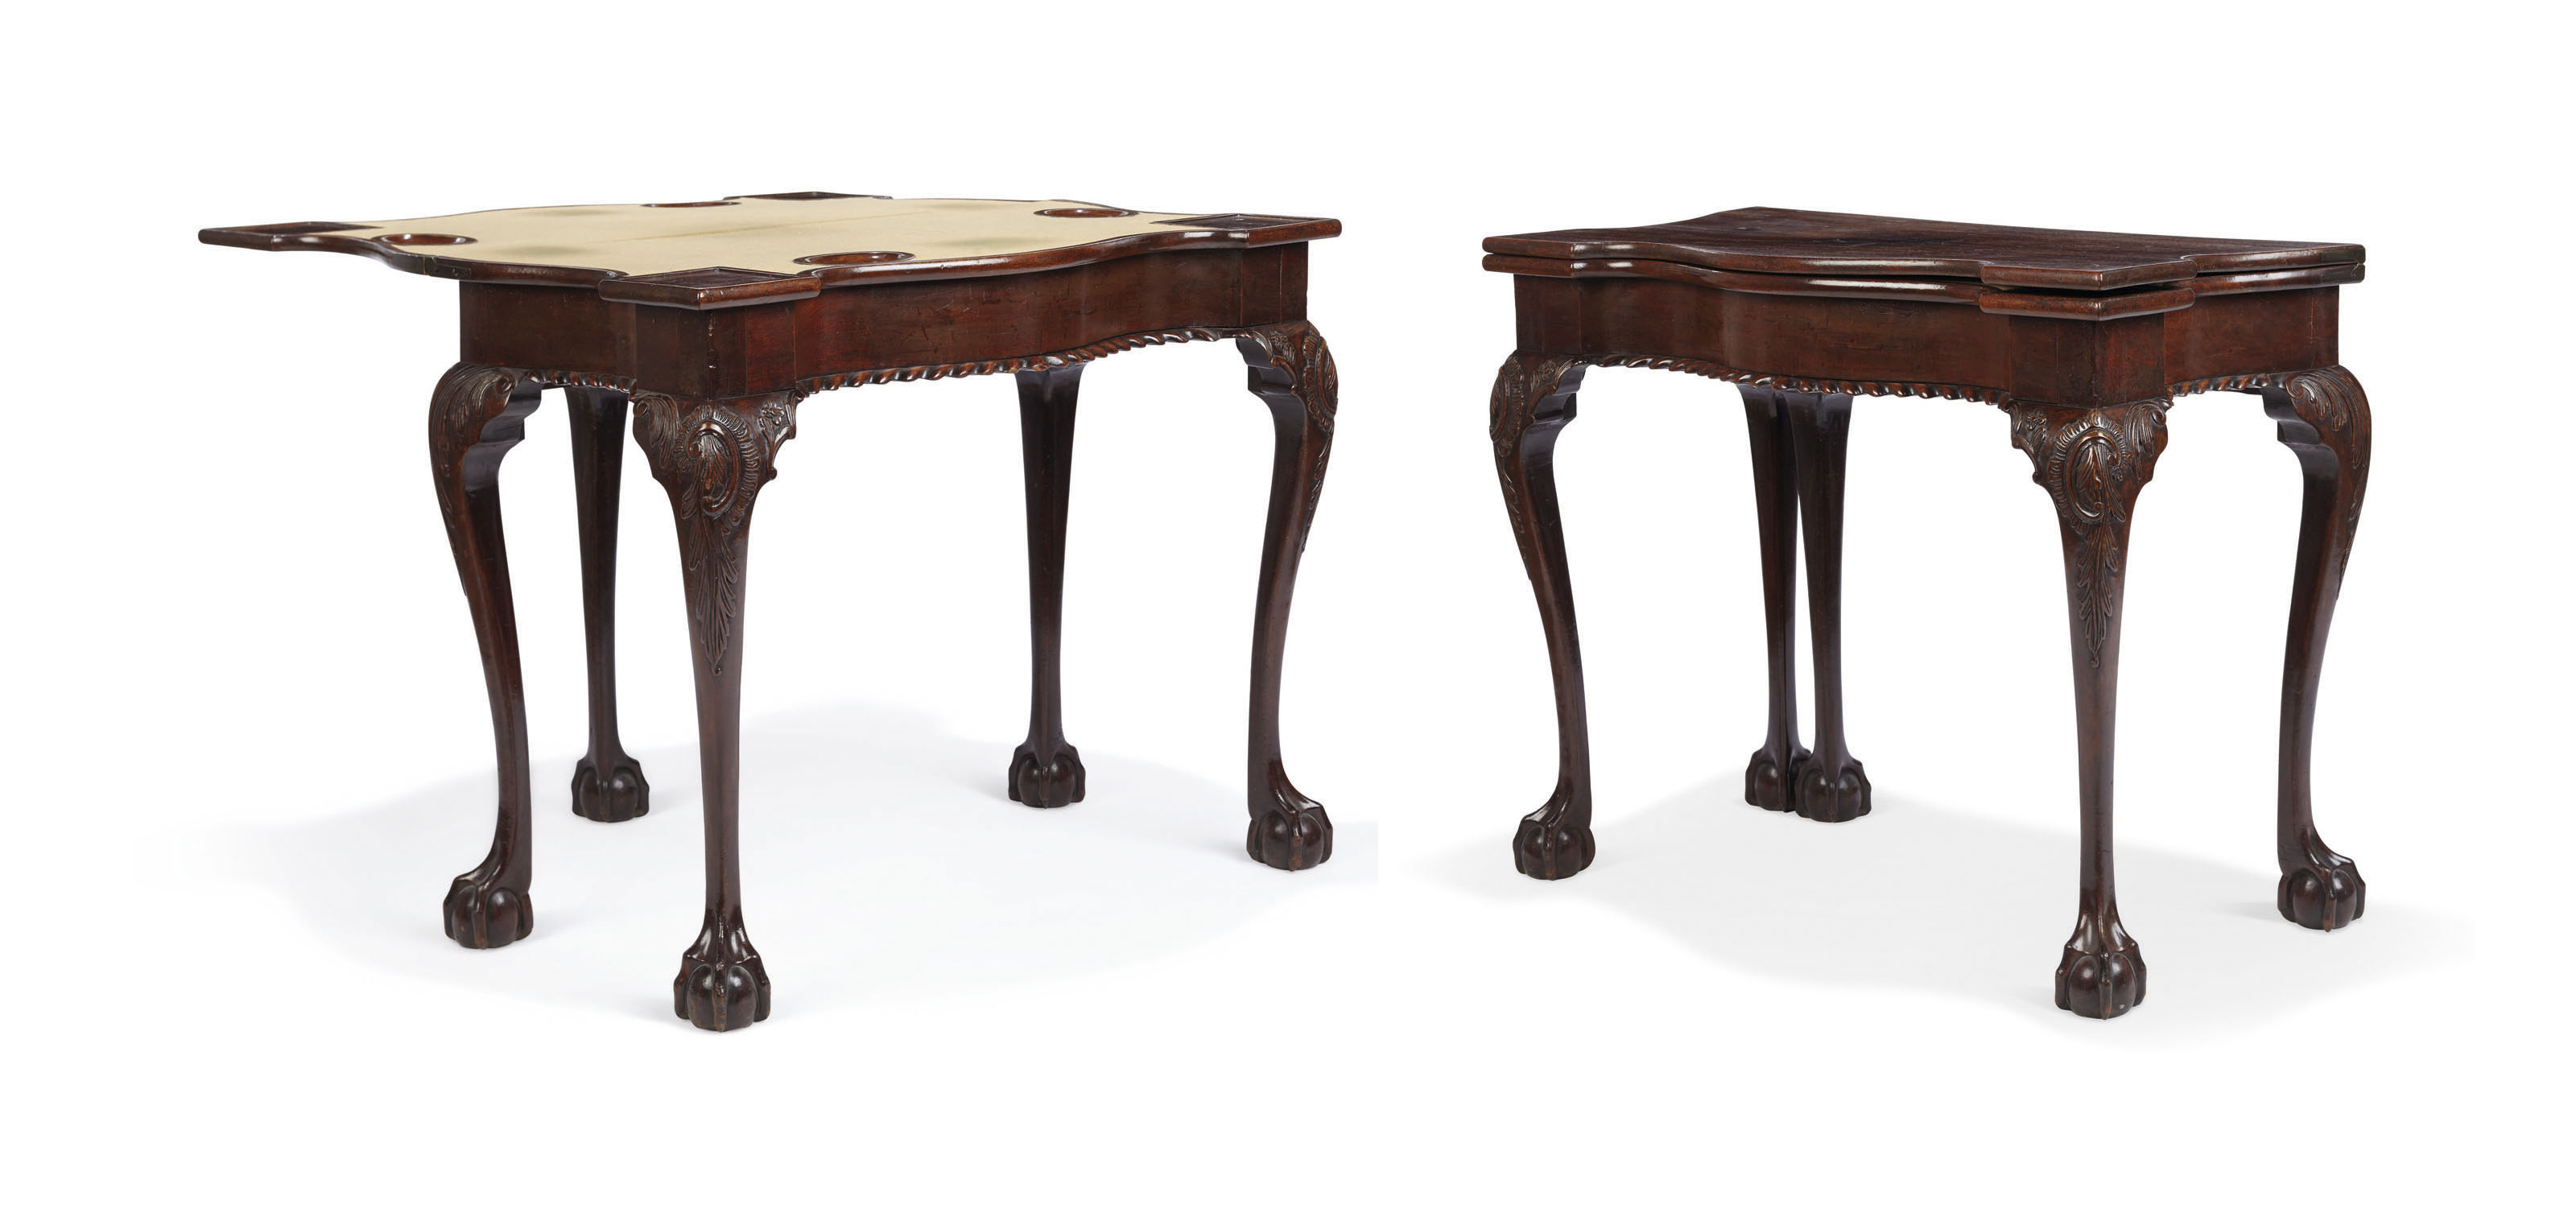 A CHIPPENDALE CARVED AND FIGURED MAHOGANY CARD TABLE